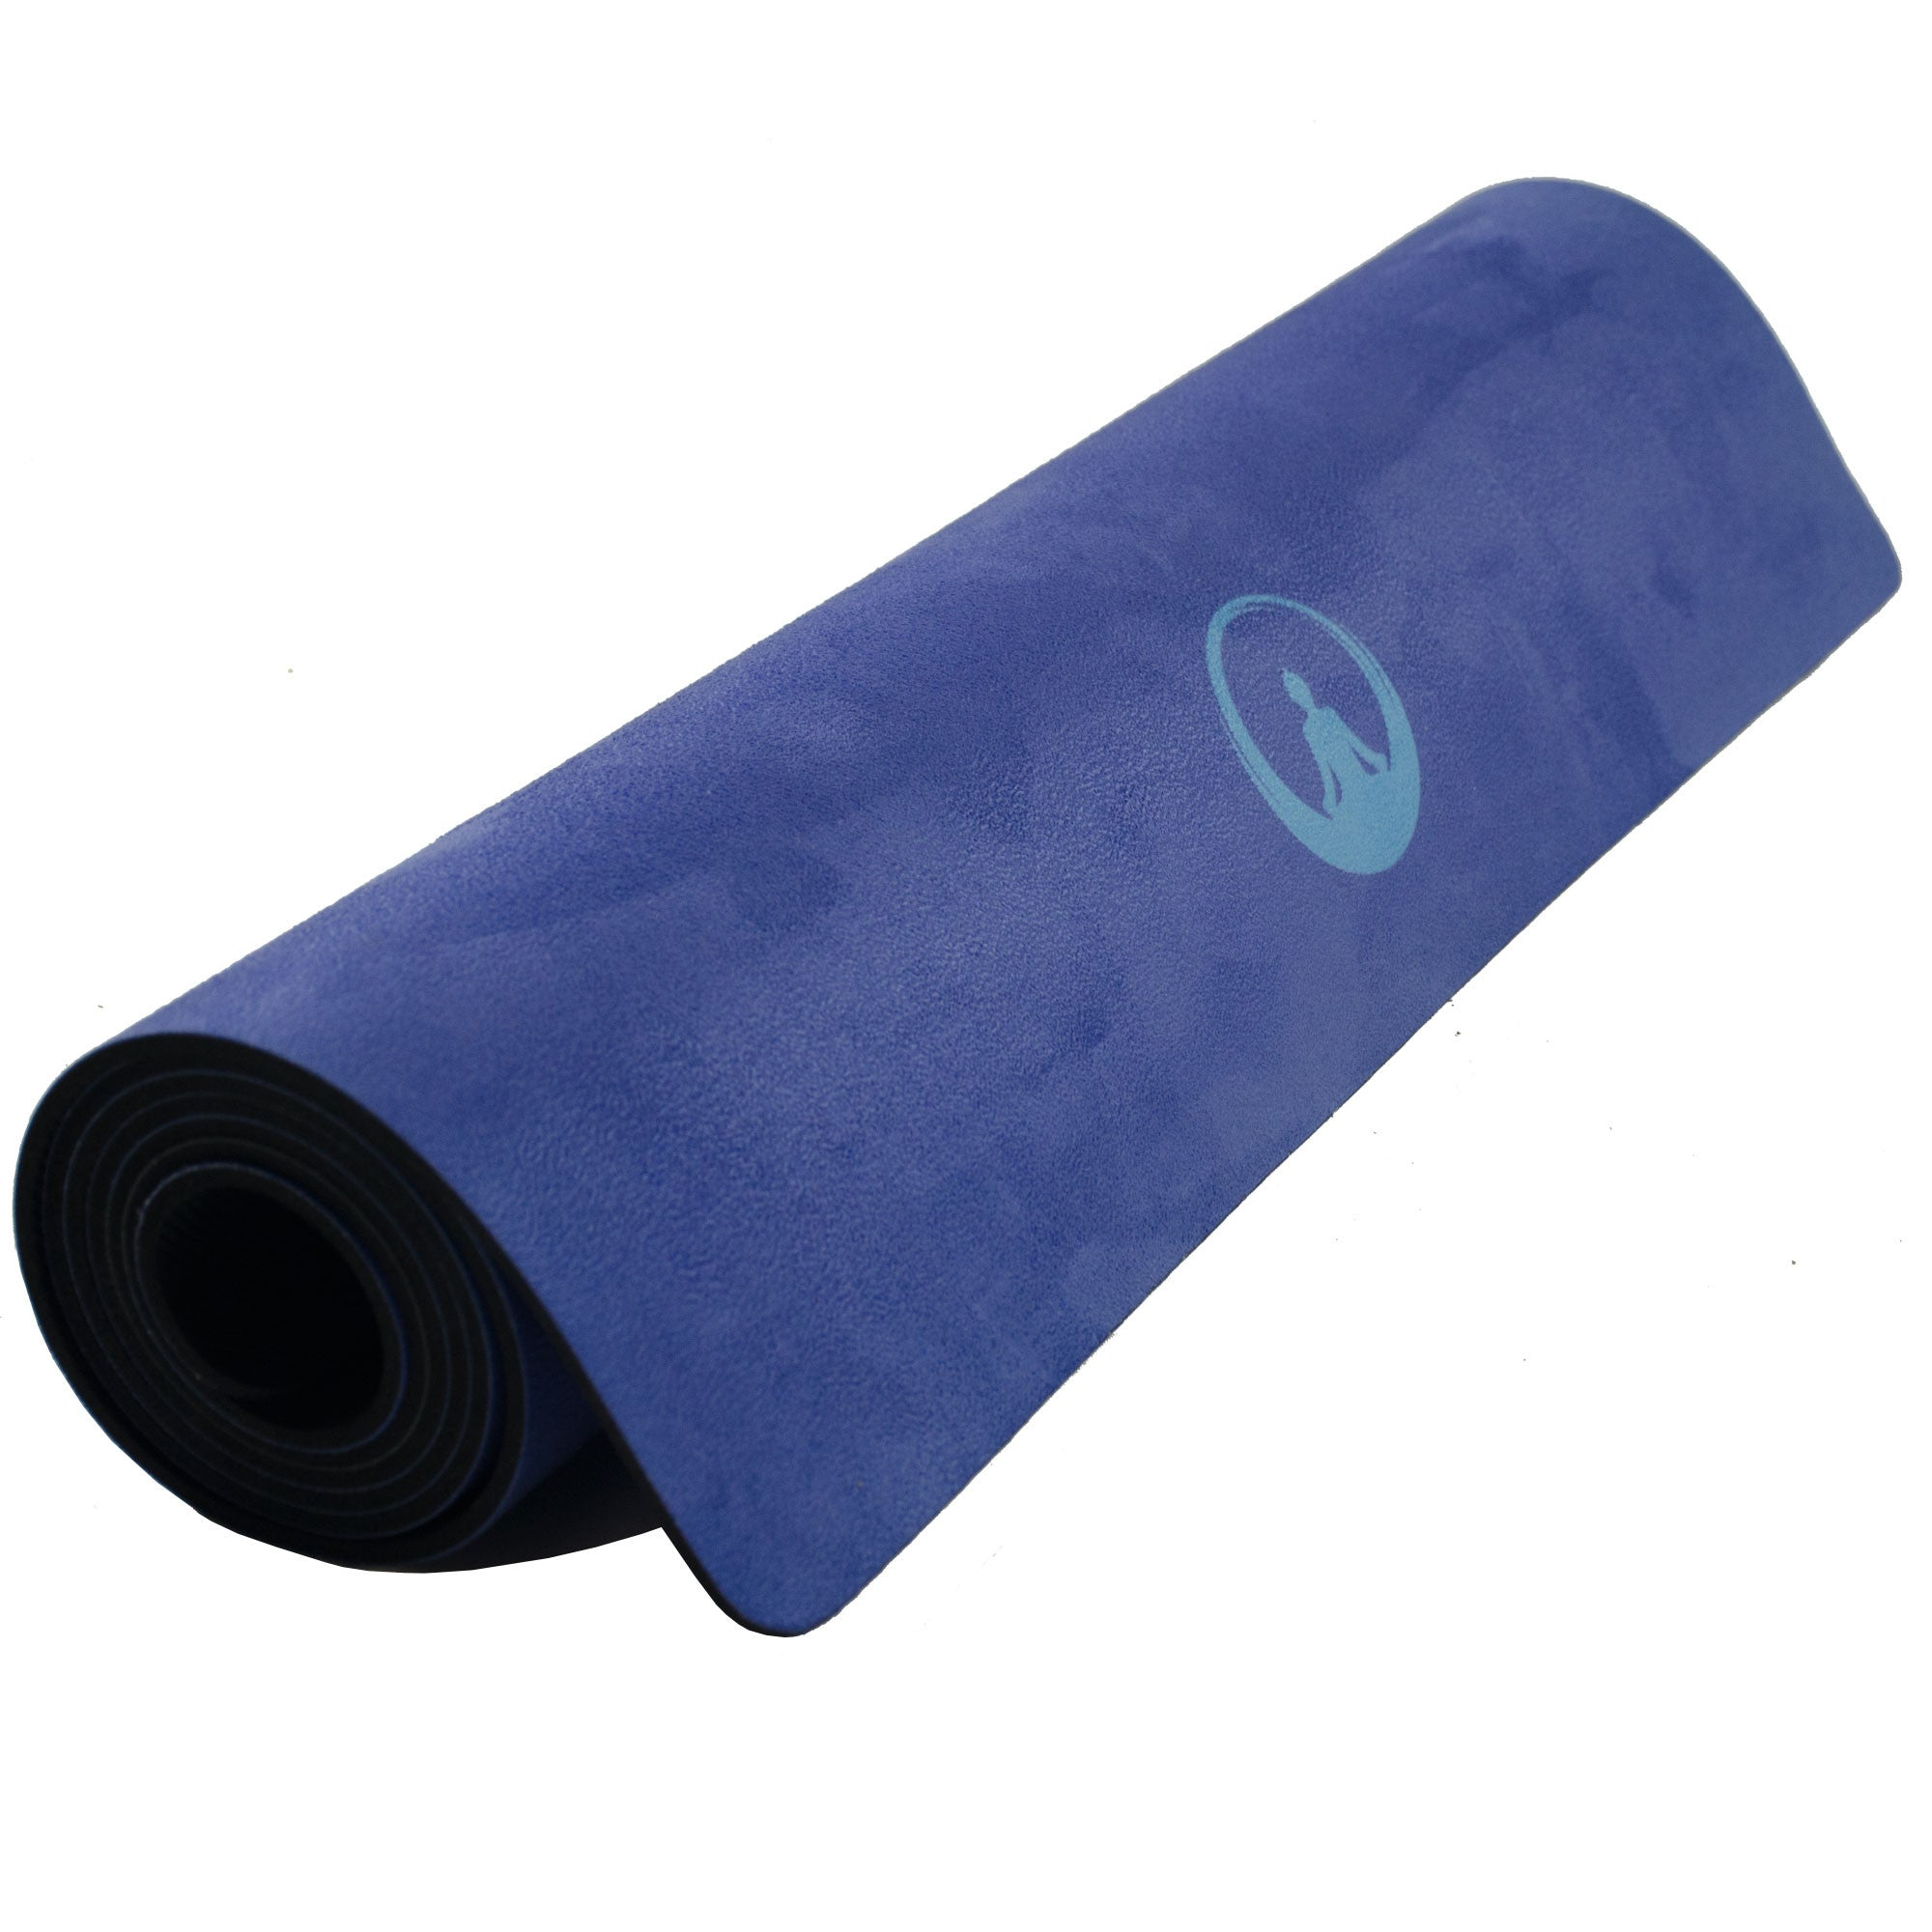 mat gym gymnastics best workout mats yoga stretching itm products aerobics rubber blue folding choice exercise